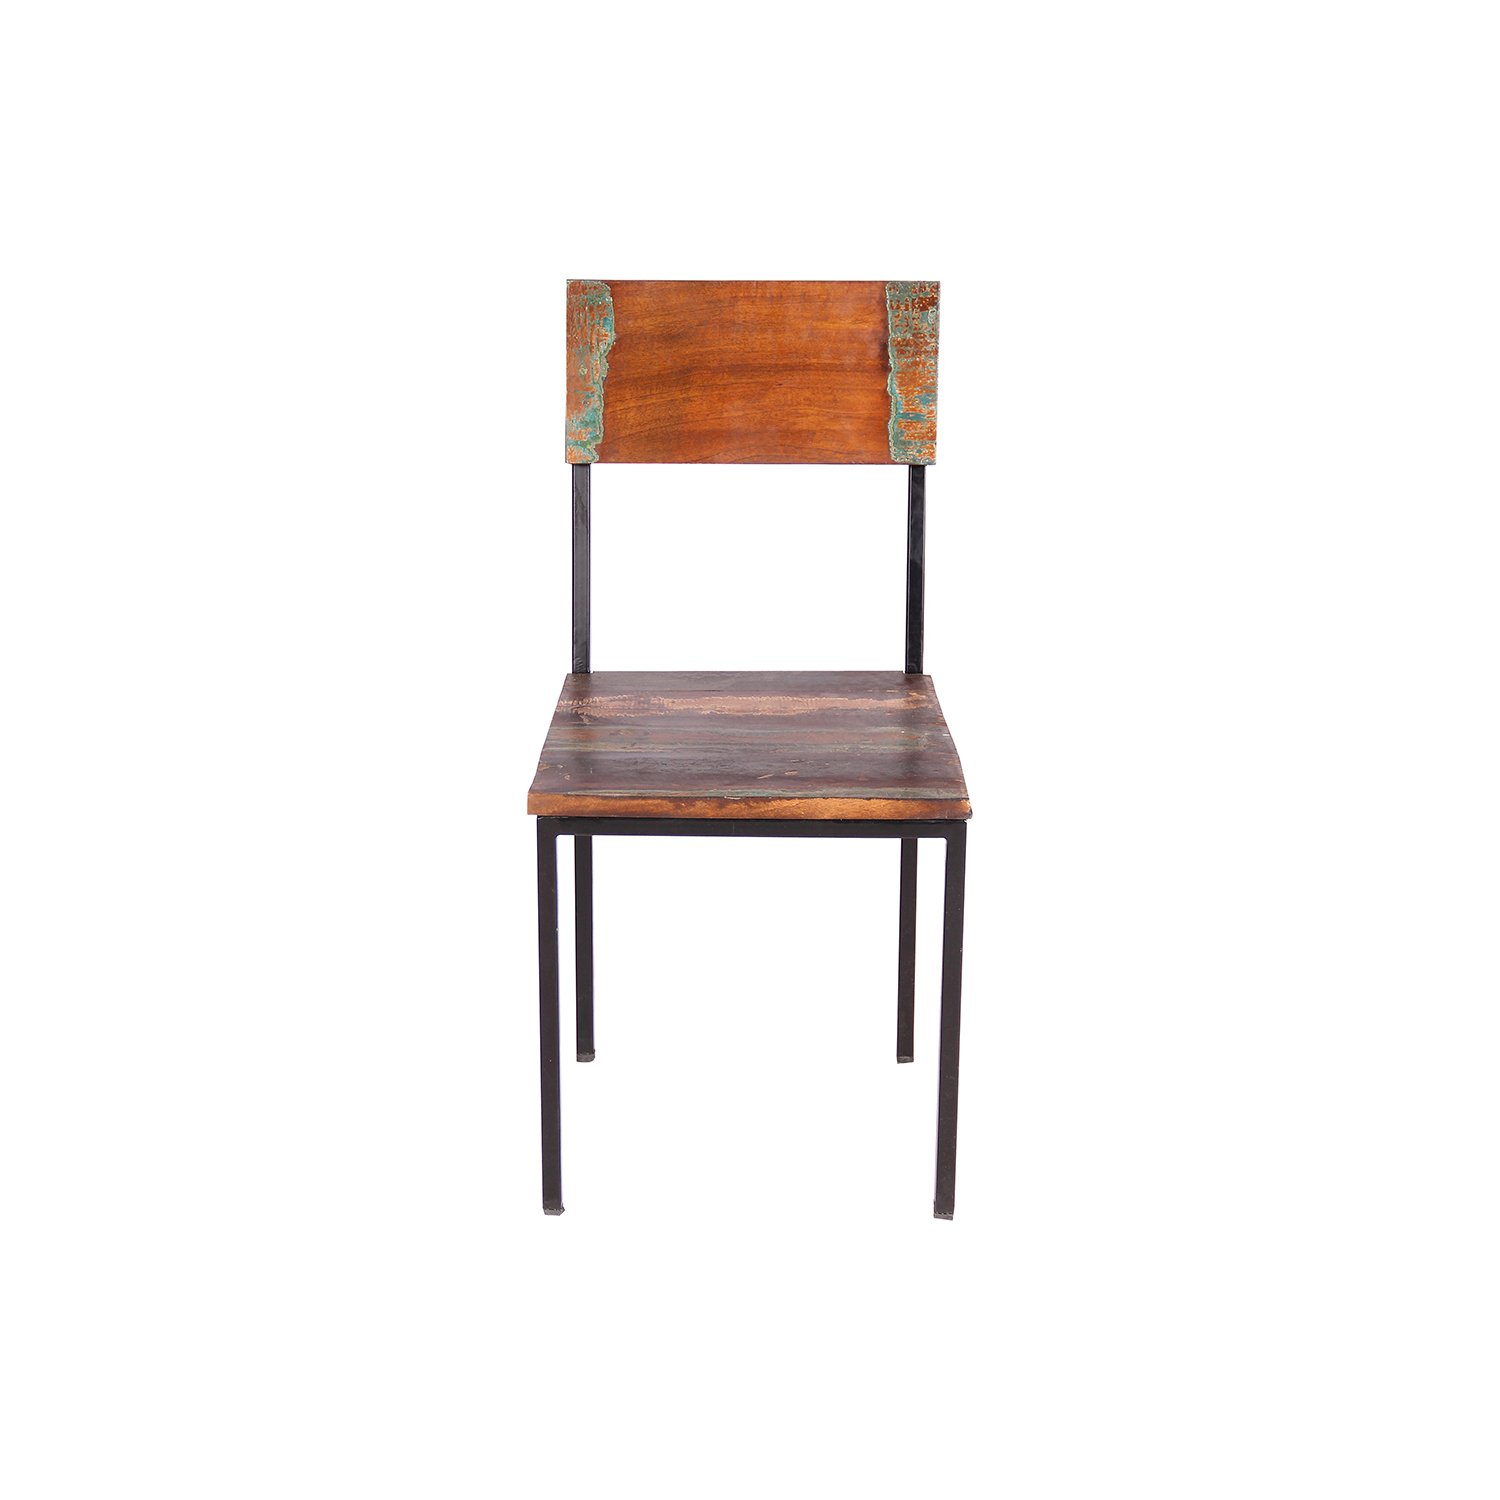 Contemporary Old Reclaimed Natural Hand Finish Wood and Metal Chair - Set of 2